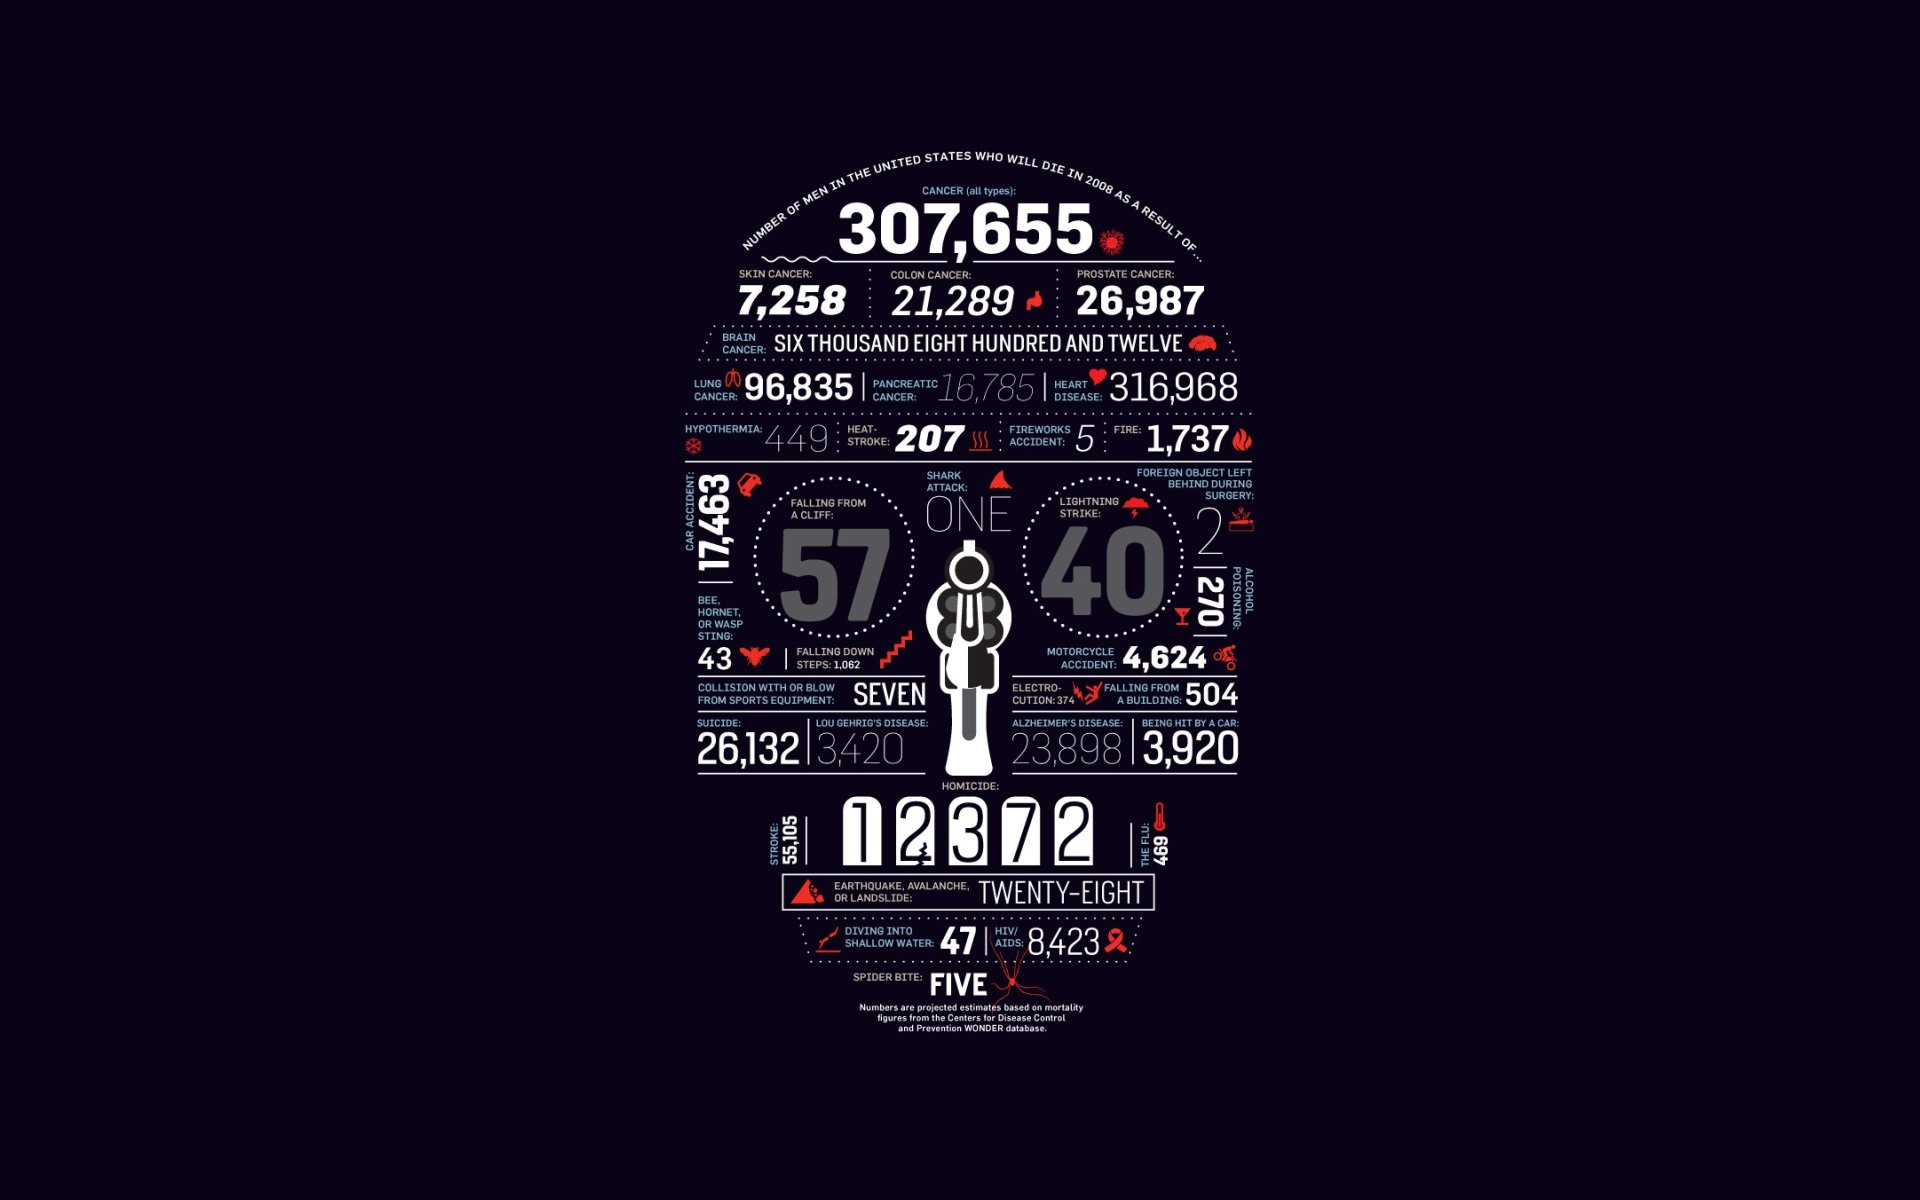 Male death statistics wallpaper 1920x1200